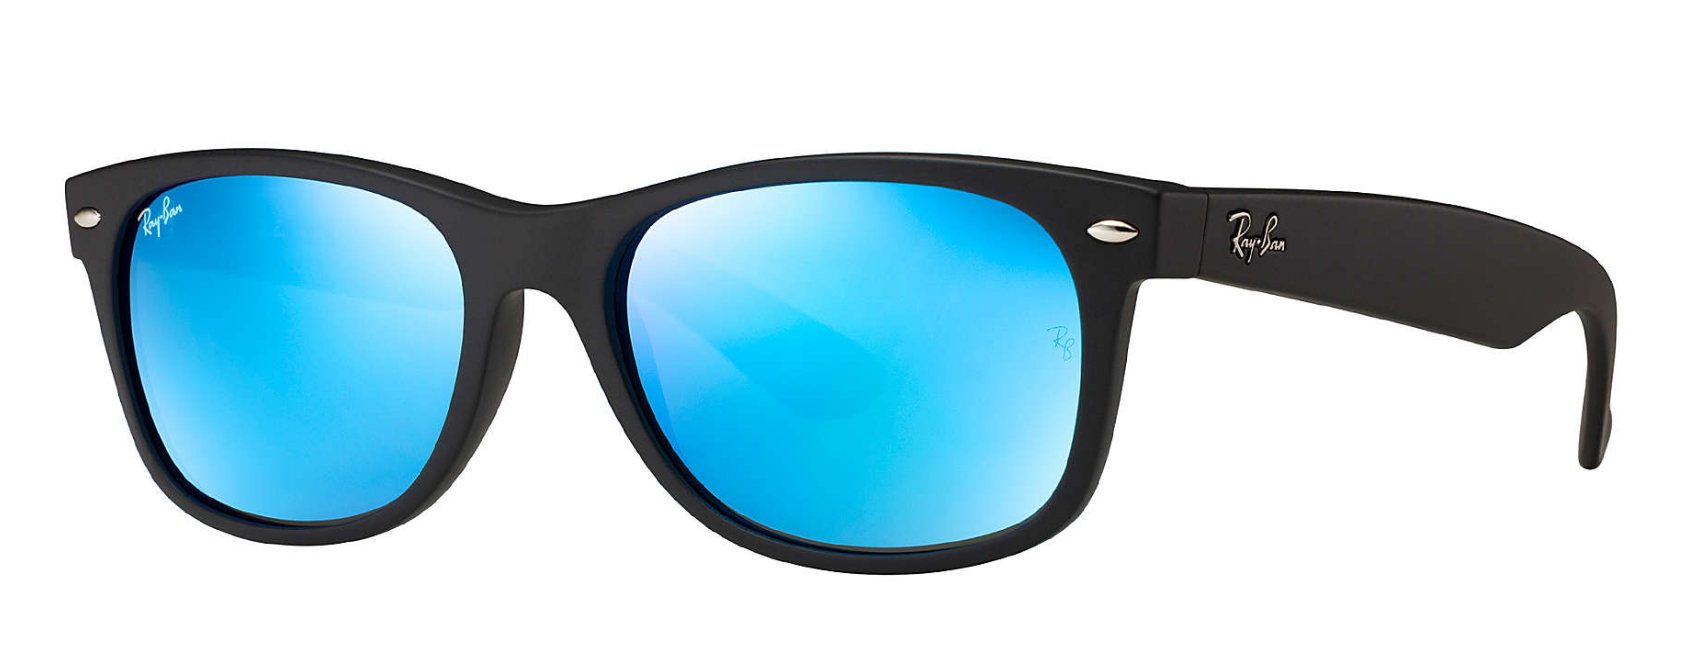 New Wayfarer Flash, Blue Flash